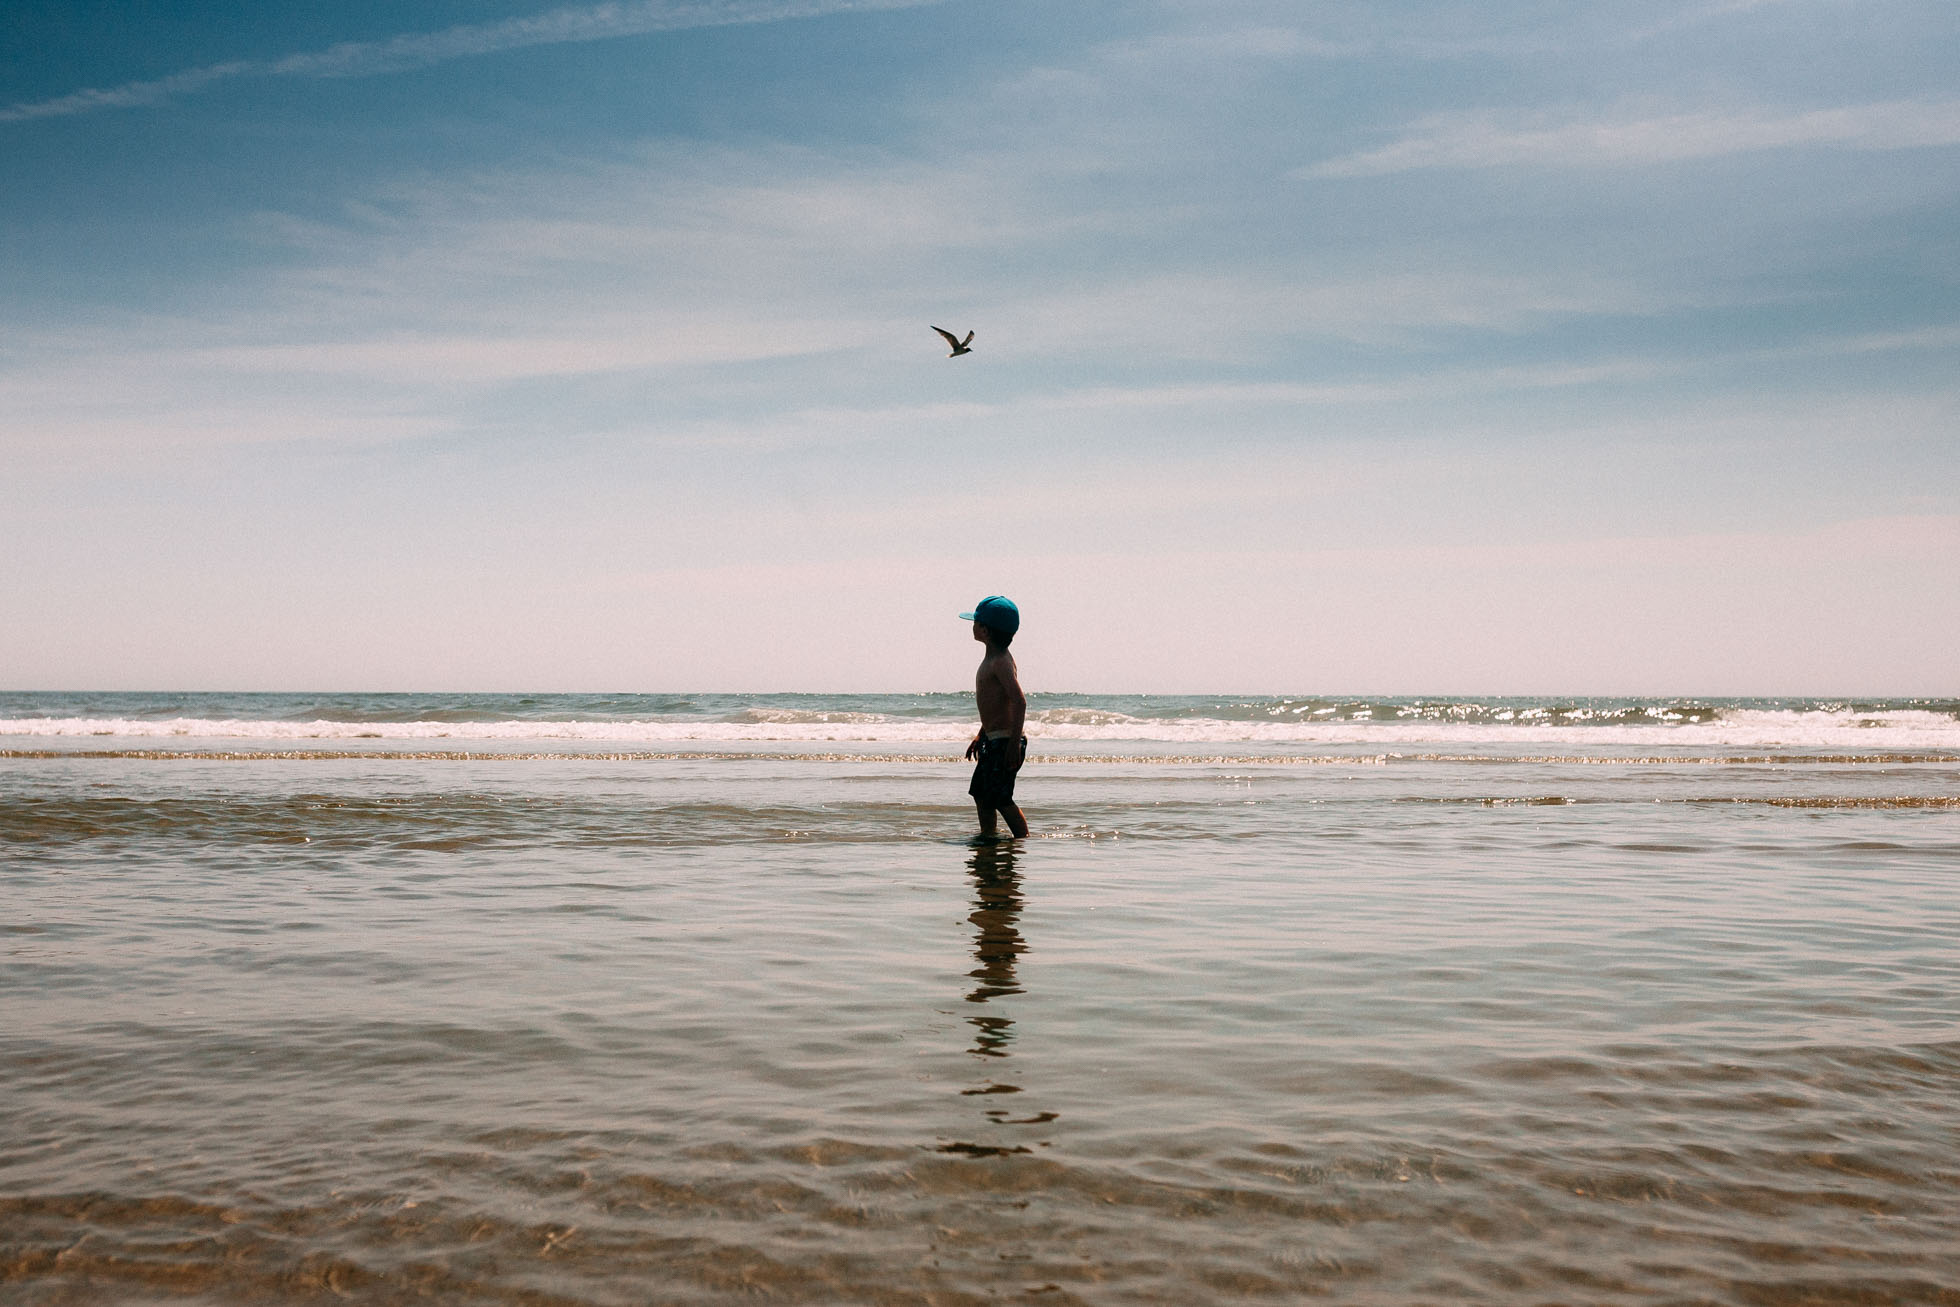 photo of boy in the water with a bird flying in the sky by Sonia Bourdon